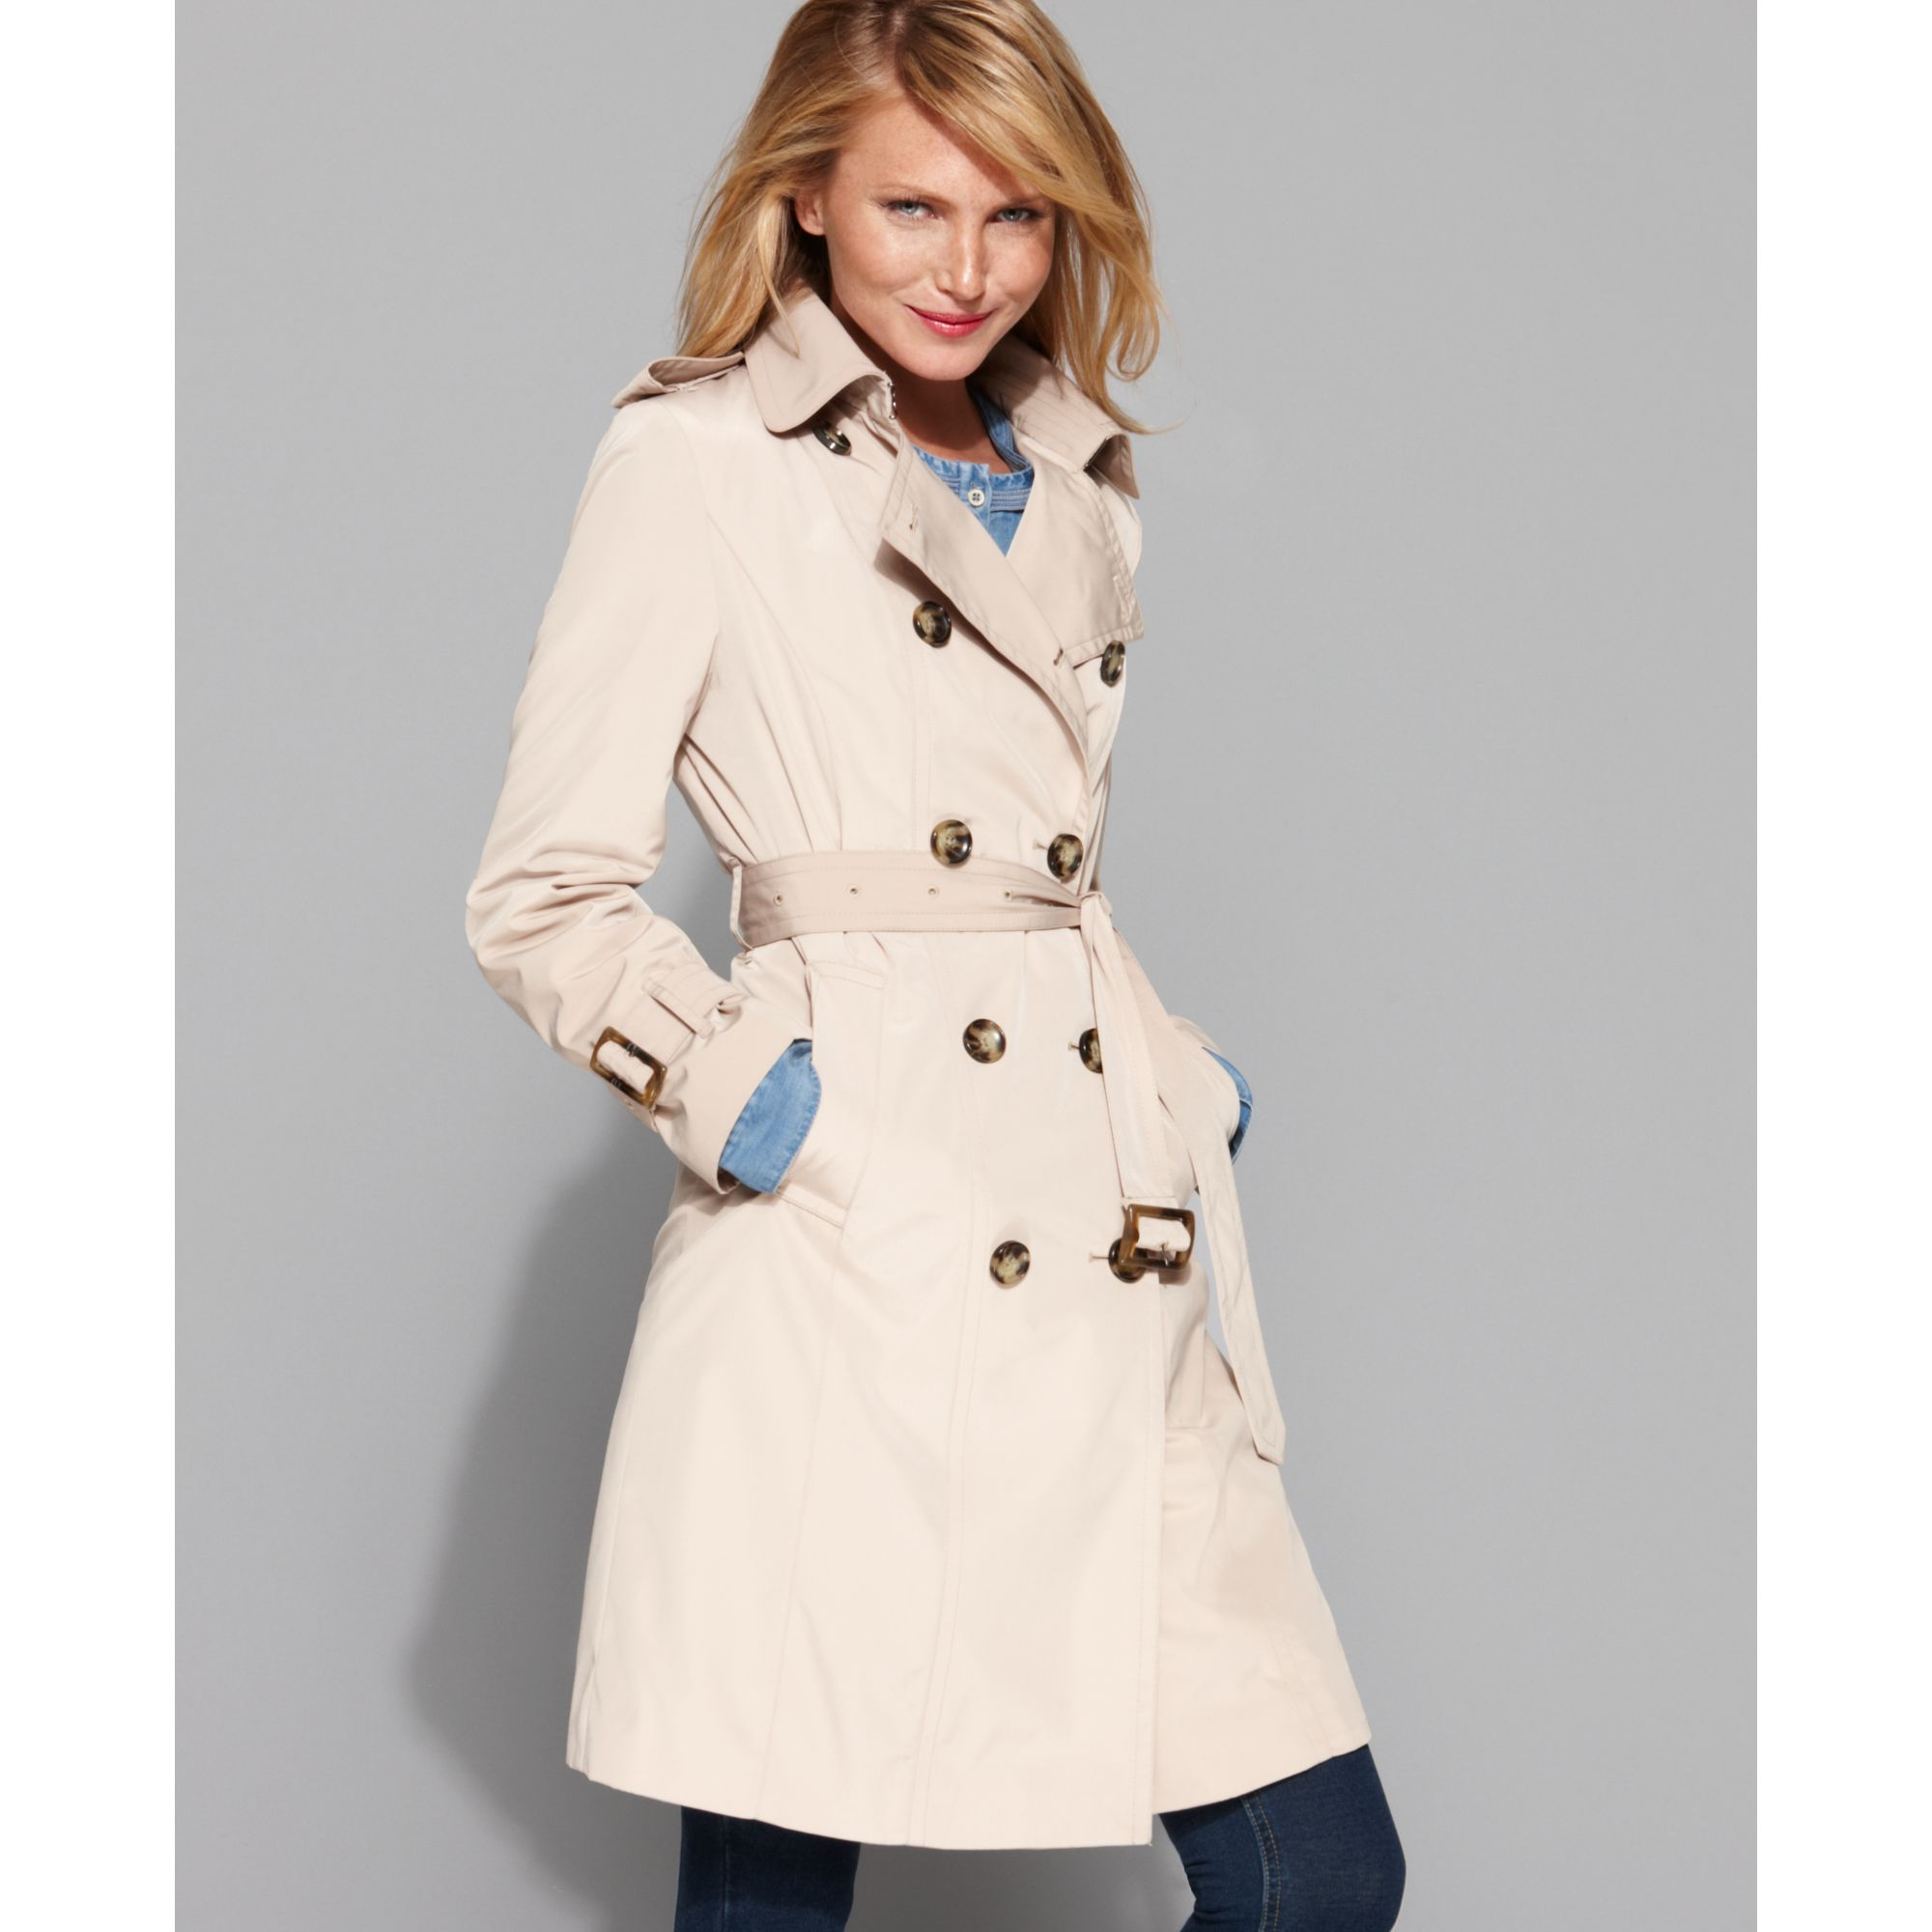 bbb527ace6d Lyst - London Fog Double Breasted Belted Trench Coat in Natural